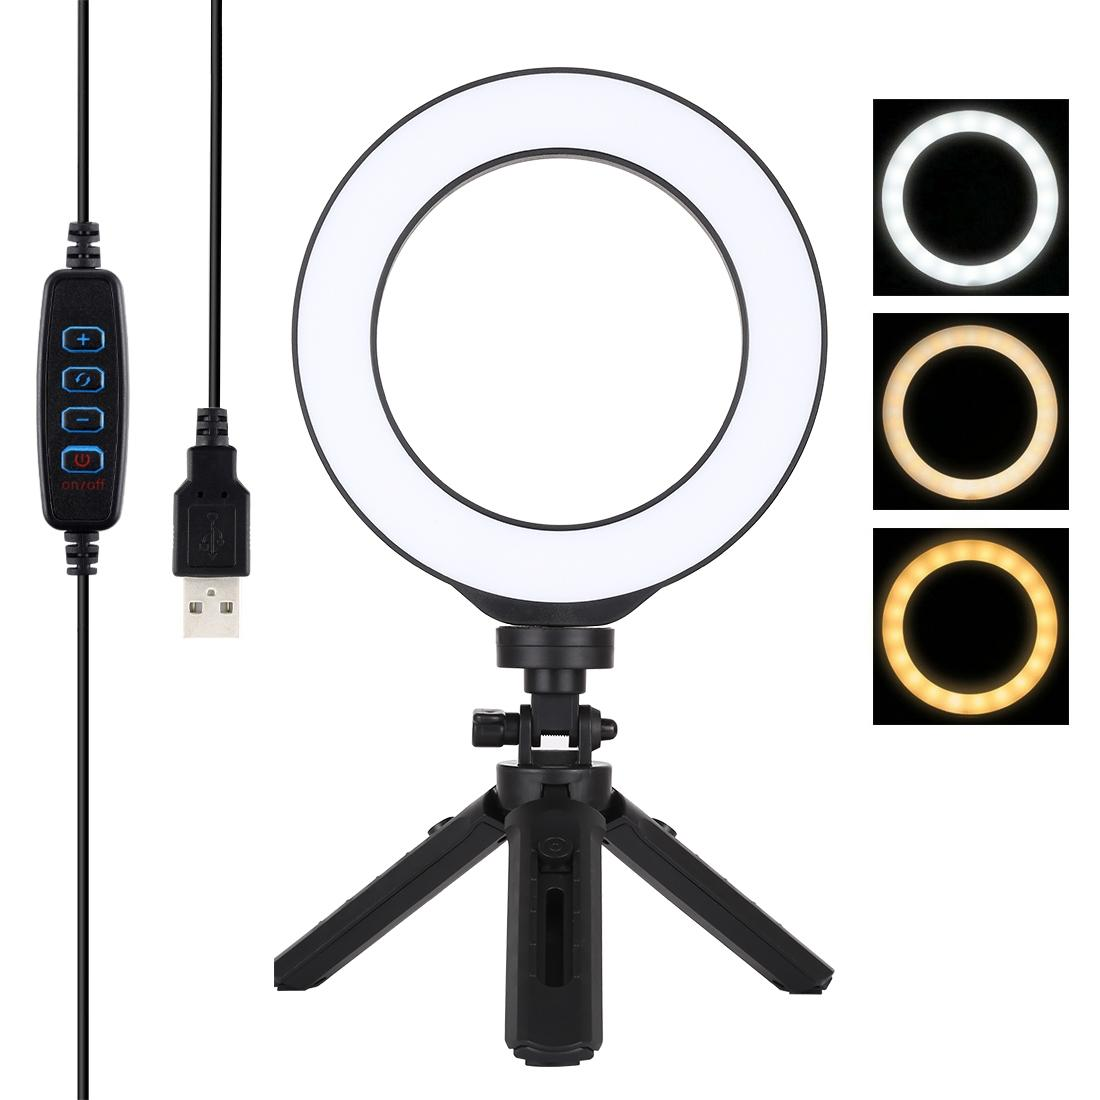 PULUZ 6.2 inch 16cm USB3 Modes Dimmable LED Ring Vlogging Photography Video Lights + Pocket Tripod Mount Kit with Cold Shoe Tripod Ball Head